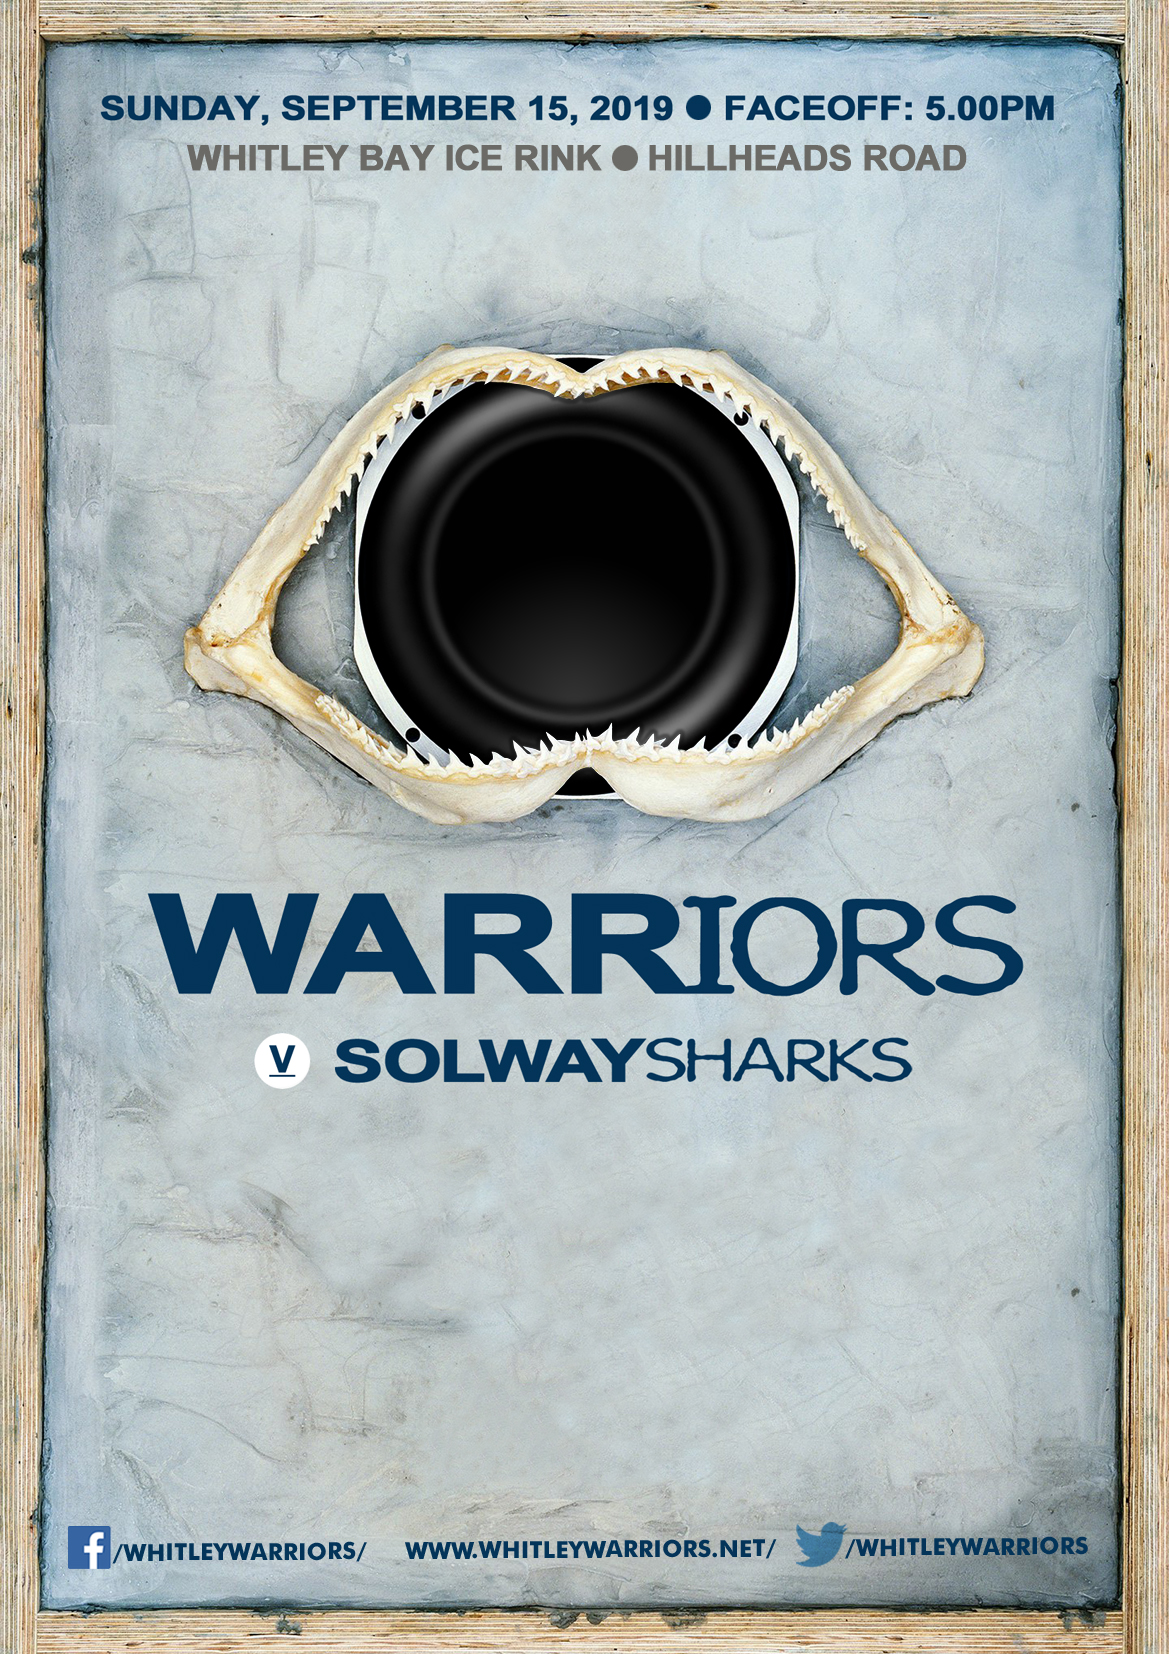 Whitley Warriors vs Solway Sharks @ Whitley Bay Ice Rink, Sunday 15 September 2019, face off 5pm